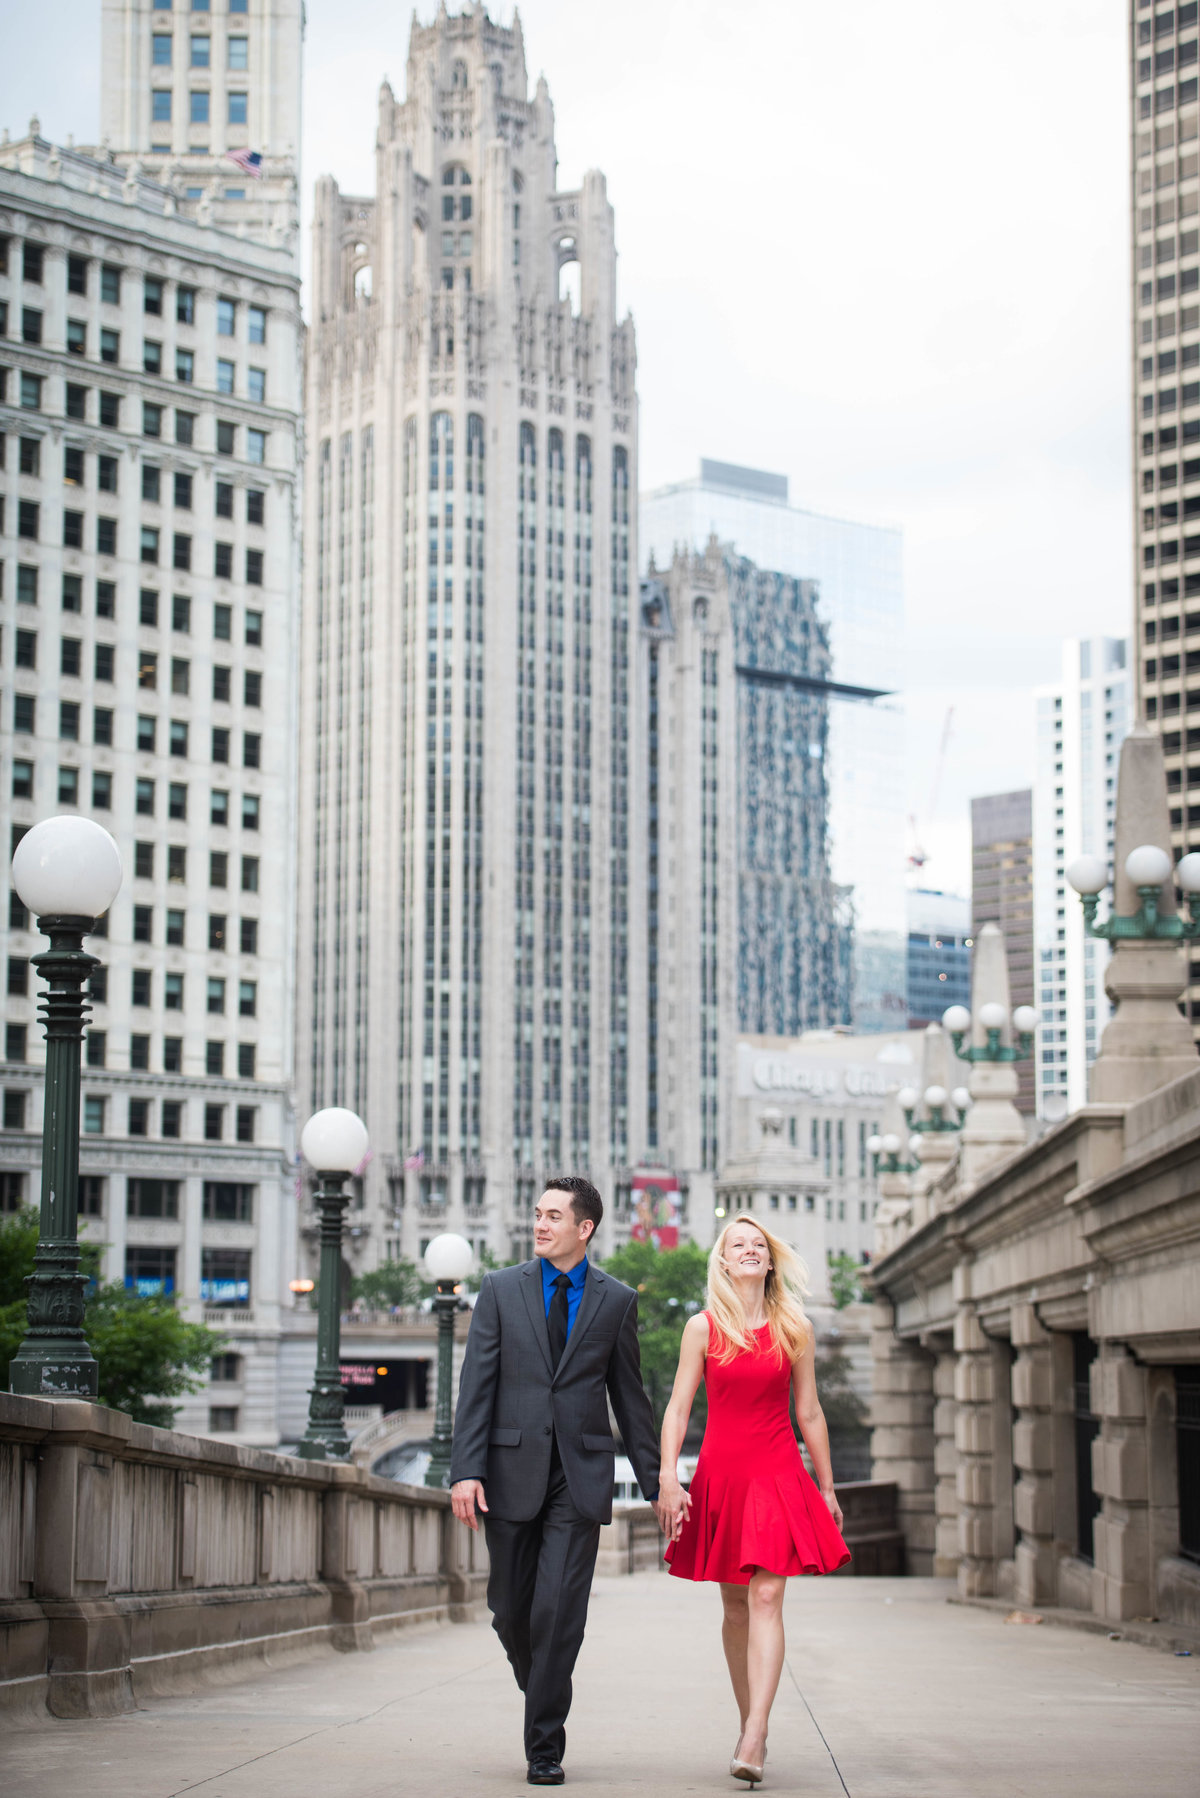 Engaged couple, Chicago, walks Riverwalk, Wrigley Building skyline.